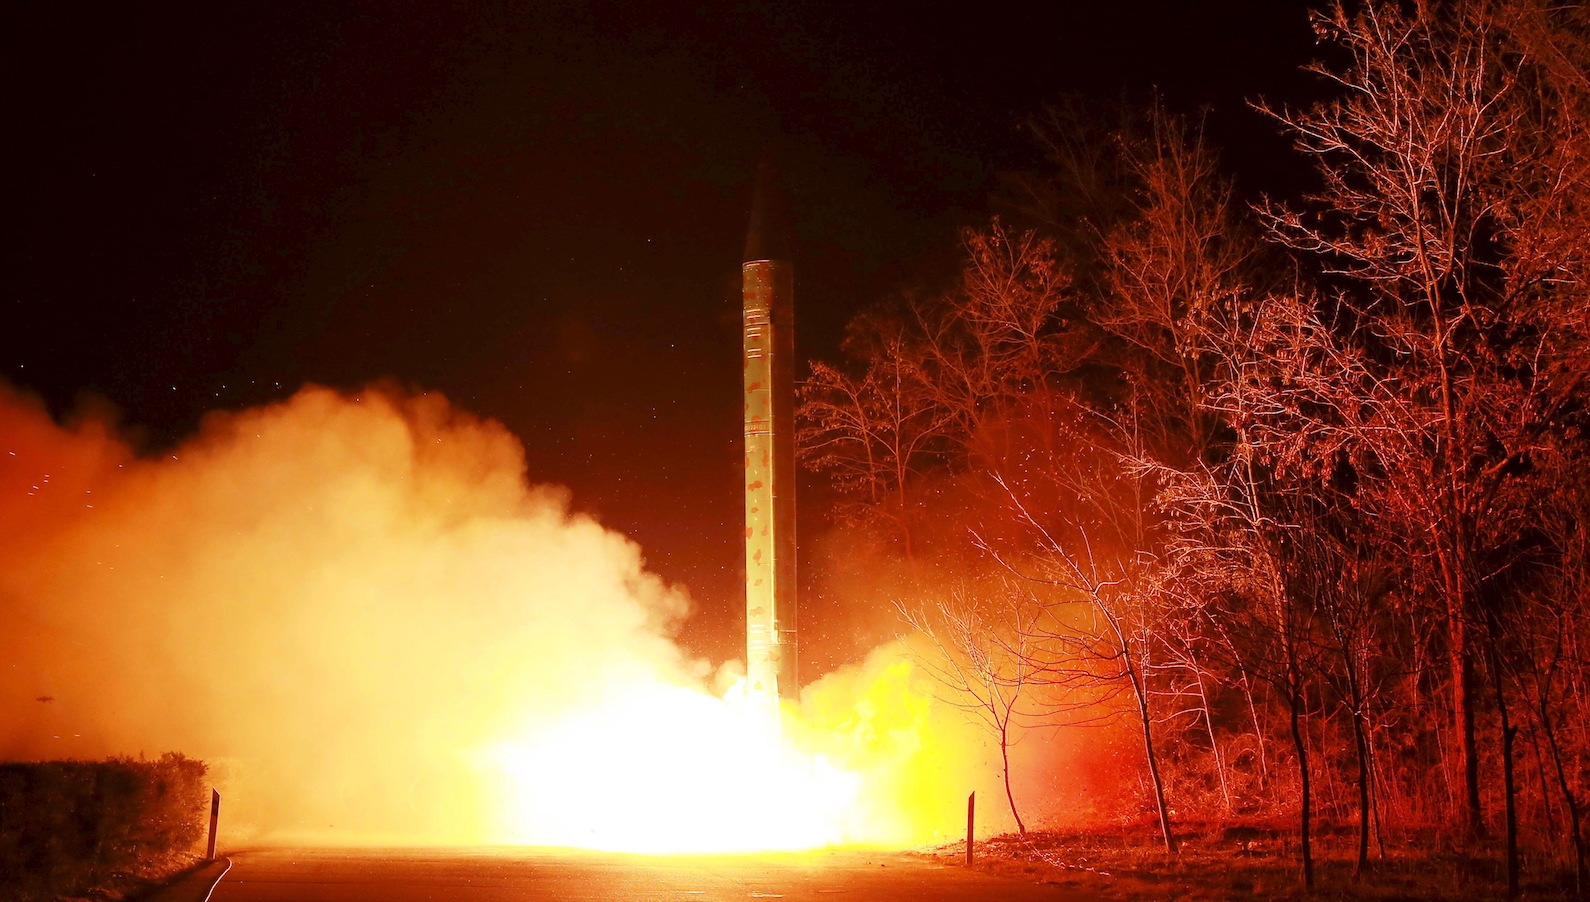 A ballistic rocket launch drill of the Strategic Force of the Korean People's Army (KPA) is seen at an unknown location, in this undated photo released by North Korea's Korean Central News Agency (KCNA) in Pyongyang on March 11, 2016.     TPX IMAGES OF THE DAY      REUTERS/KCNA      ATTENTION EDITORS - THIS PICTURE WAS PROVIDED BY A THIRD PARTY. REUTERS IS UNABLE TO INDEPENDENTLY VERIFY THE AUTHENTICITY, CONTENT, LOCATION OR DATE OF THIS IMAGE. FOR EDITORIAL USE ONLY. NOT FOR SALE FOR MARKETING OR ADVERTISING CAMPAIGNS. NO THIRD PARTY SALES. NOT FOR USE BY REUTERS THIRD PARTY DISTRIBUTORS. SOUTH KOREA OUT. NO COMMERCIAL OR EDITORIAL SALES IN SOUTH KOREA. THIS PICTURE IS DISTRIBUTED EXACTLY AS RECEIVED BY REUTERS, AS A SERVICE TO CLIENTS. - RTSAAQK